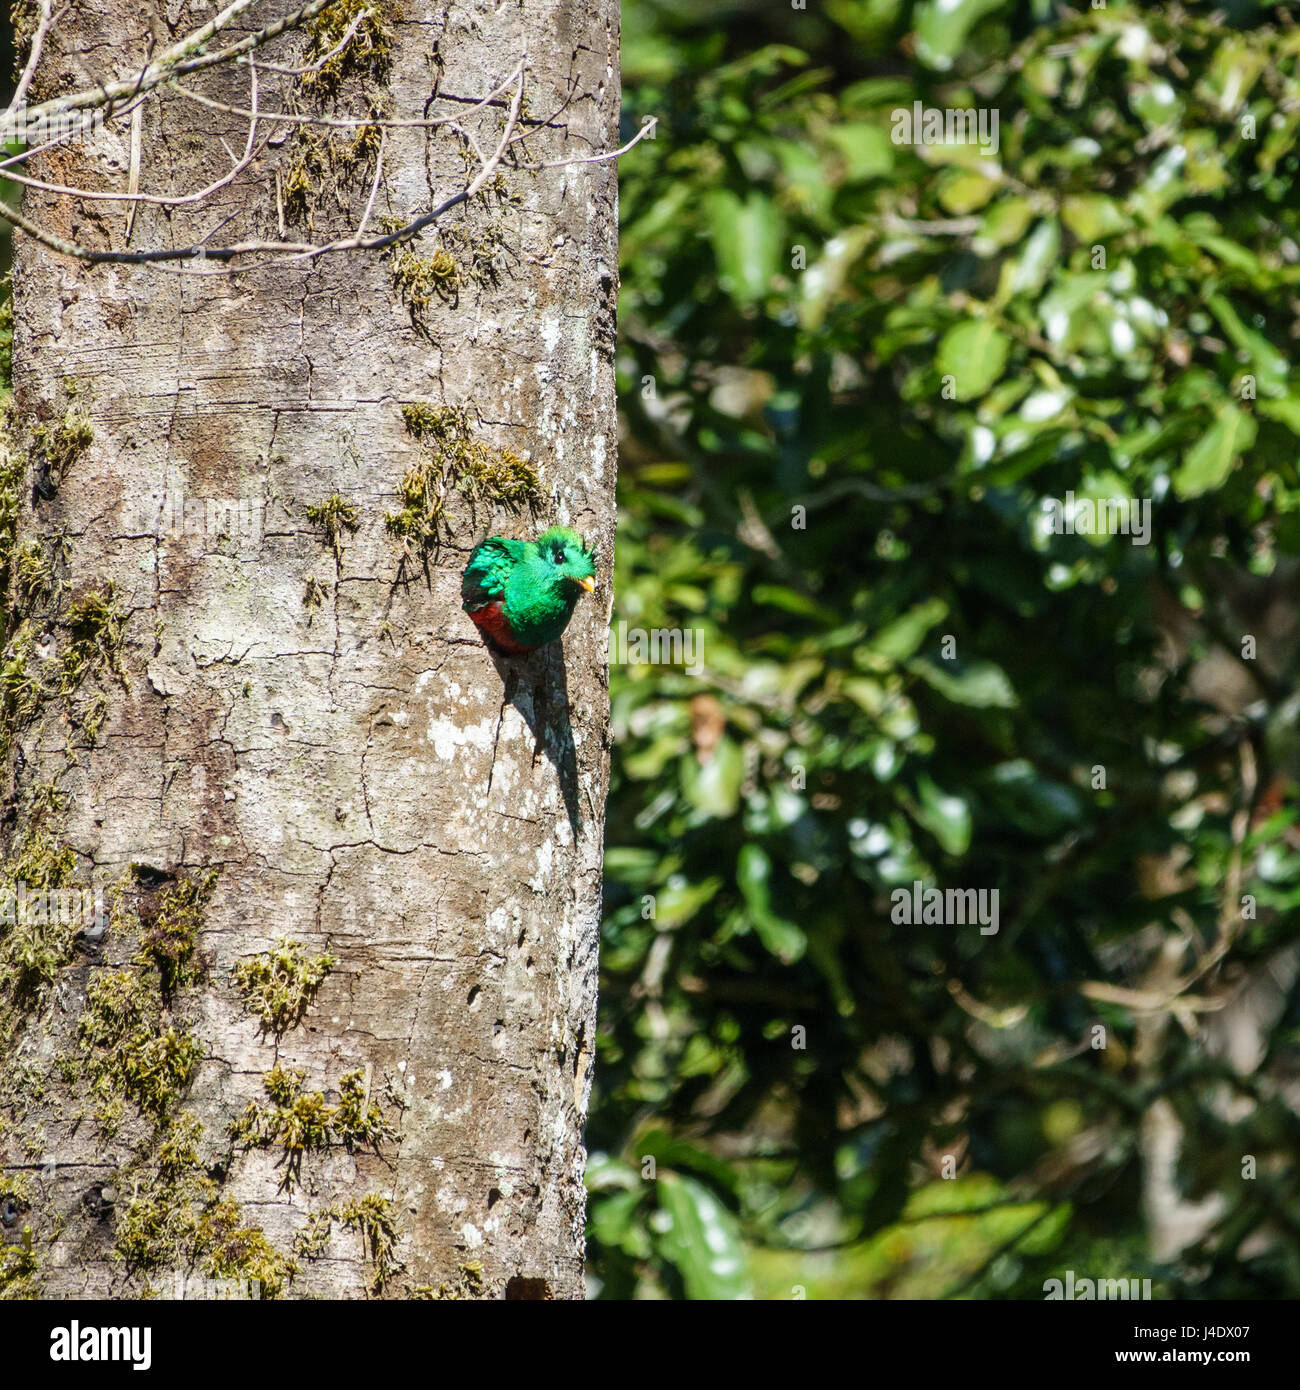 Resplendent Quetzal male in tree hole nest - Stock Image